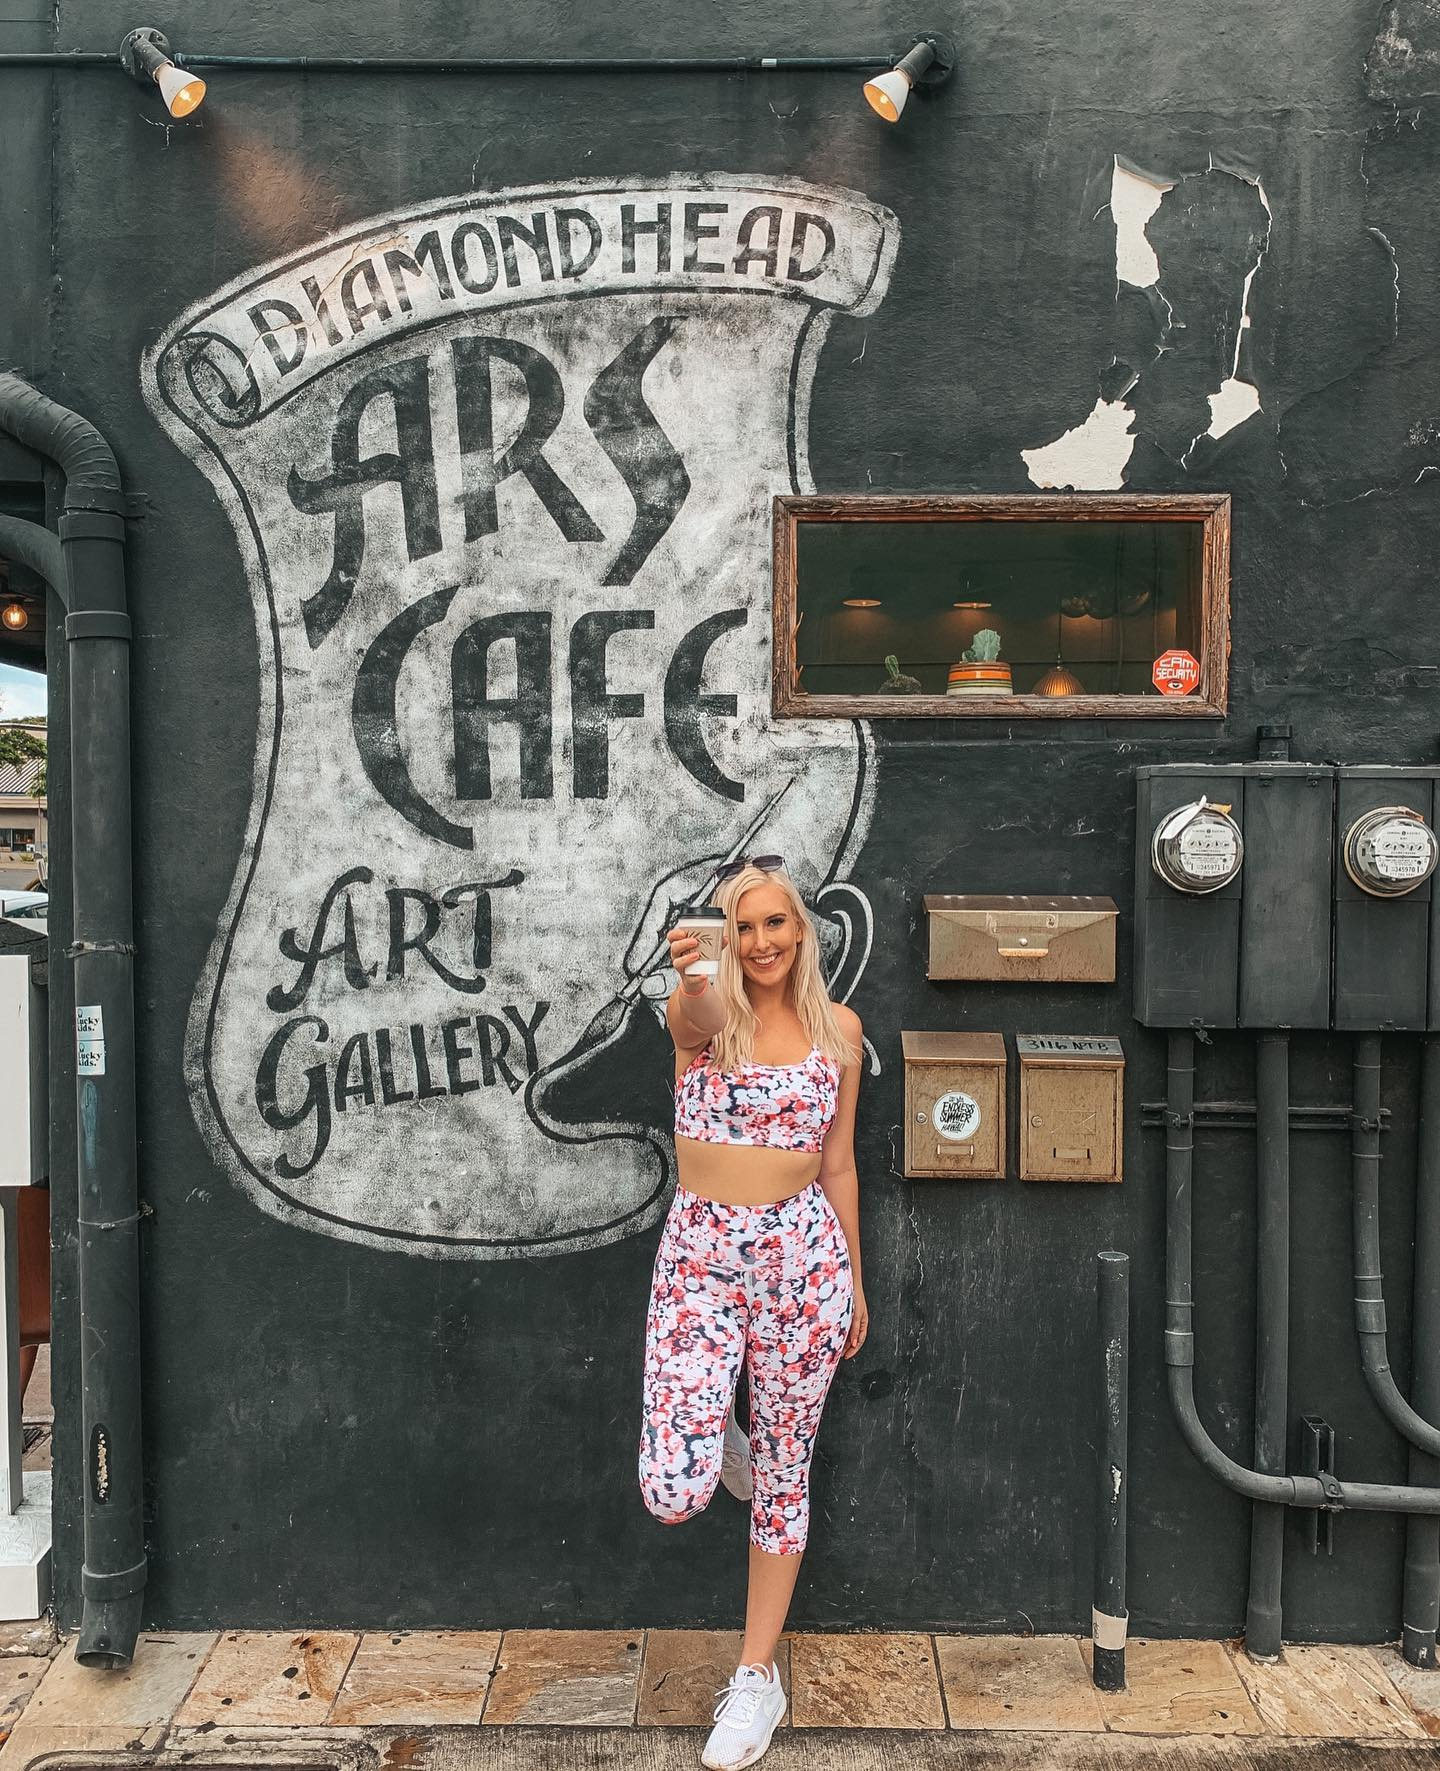 """Destiny wearing a pink speckled workout outfit and holding up coffee outside of Ars Cafe in front of their mural that reads """"Diamond Head Ars Cafe Art Gallery"""""""